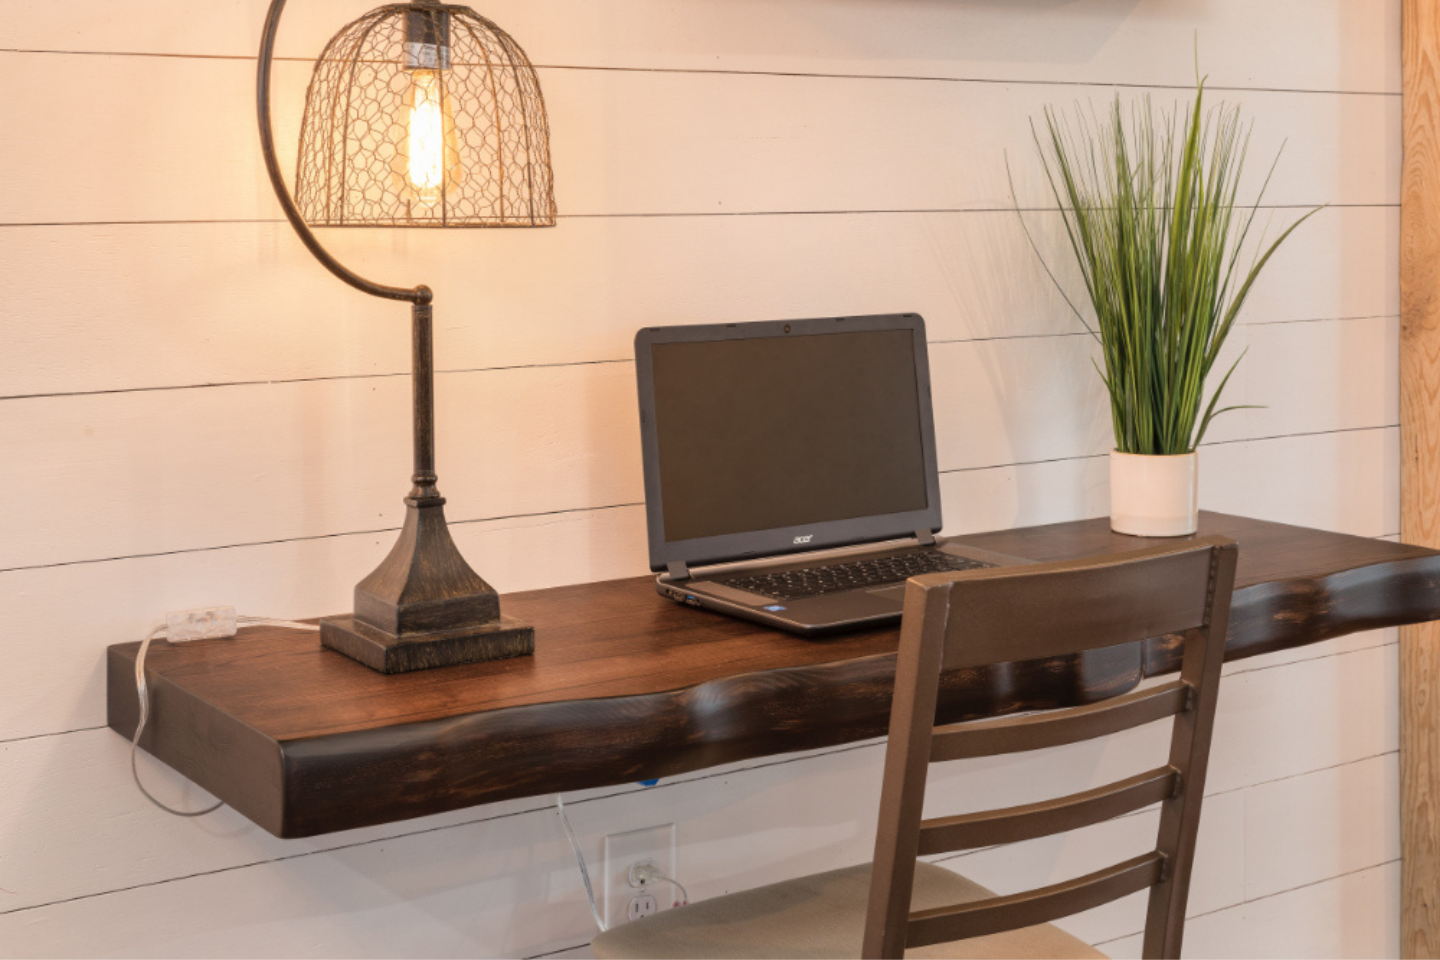 DIY wooden shelf desk for working from home